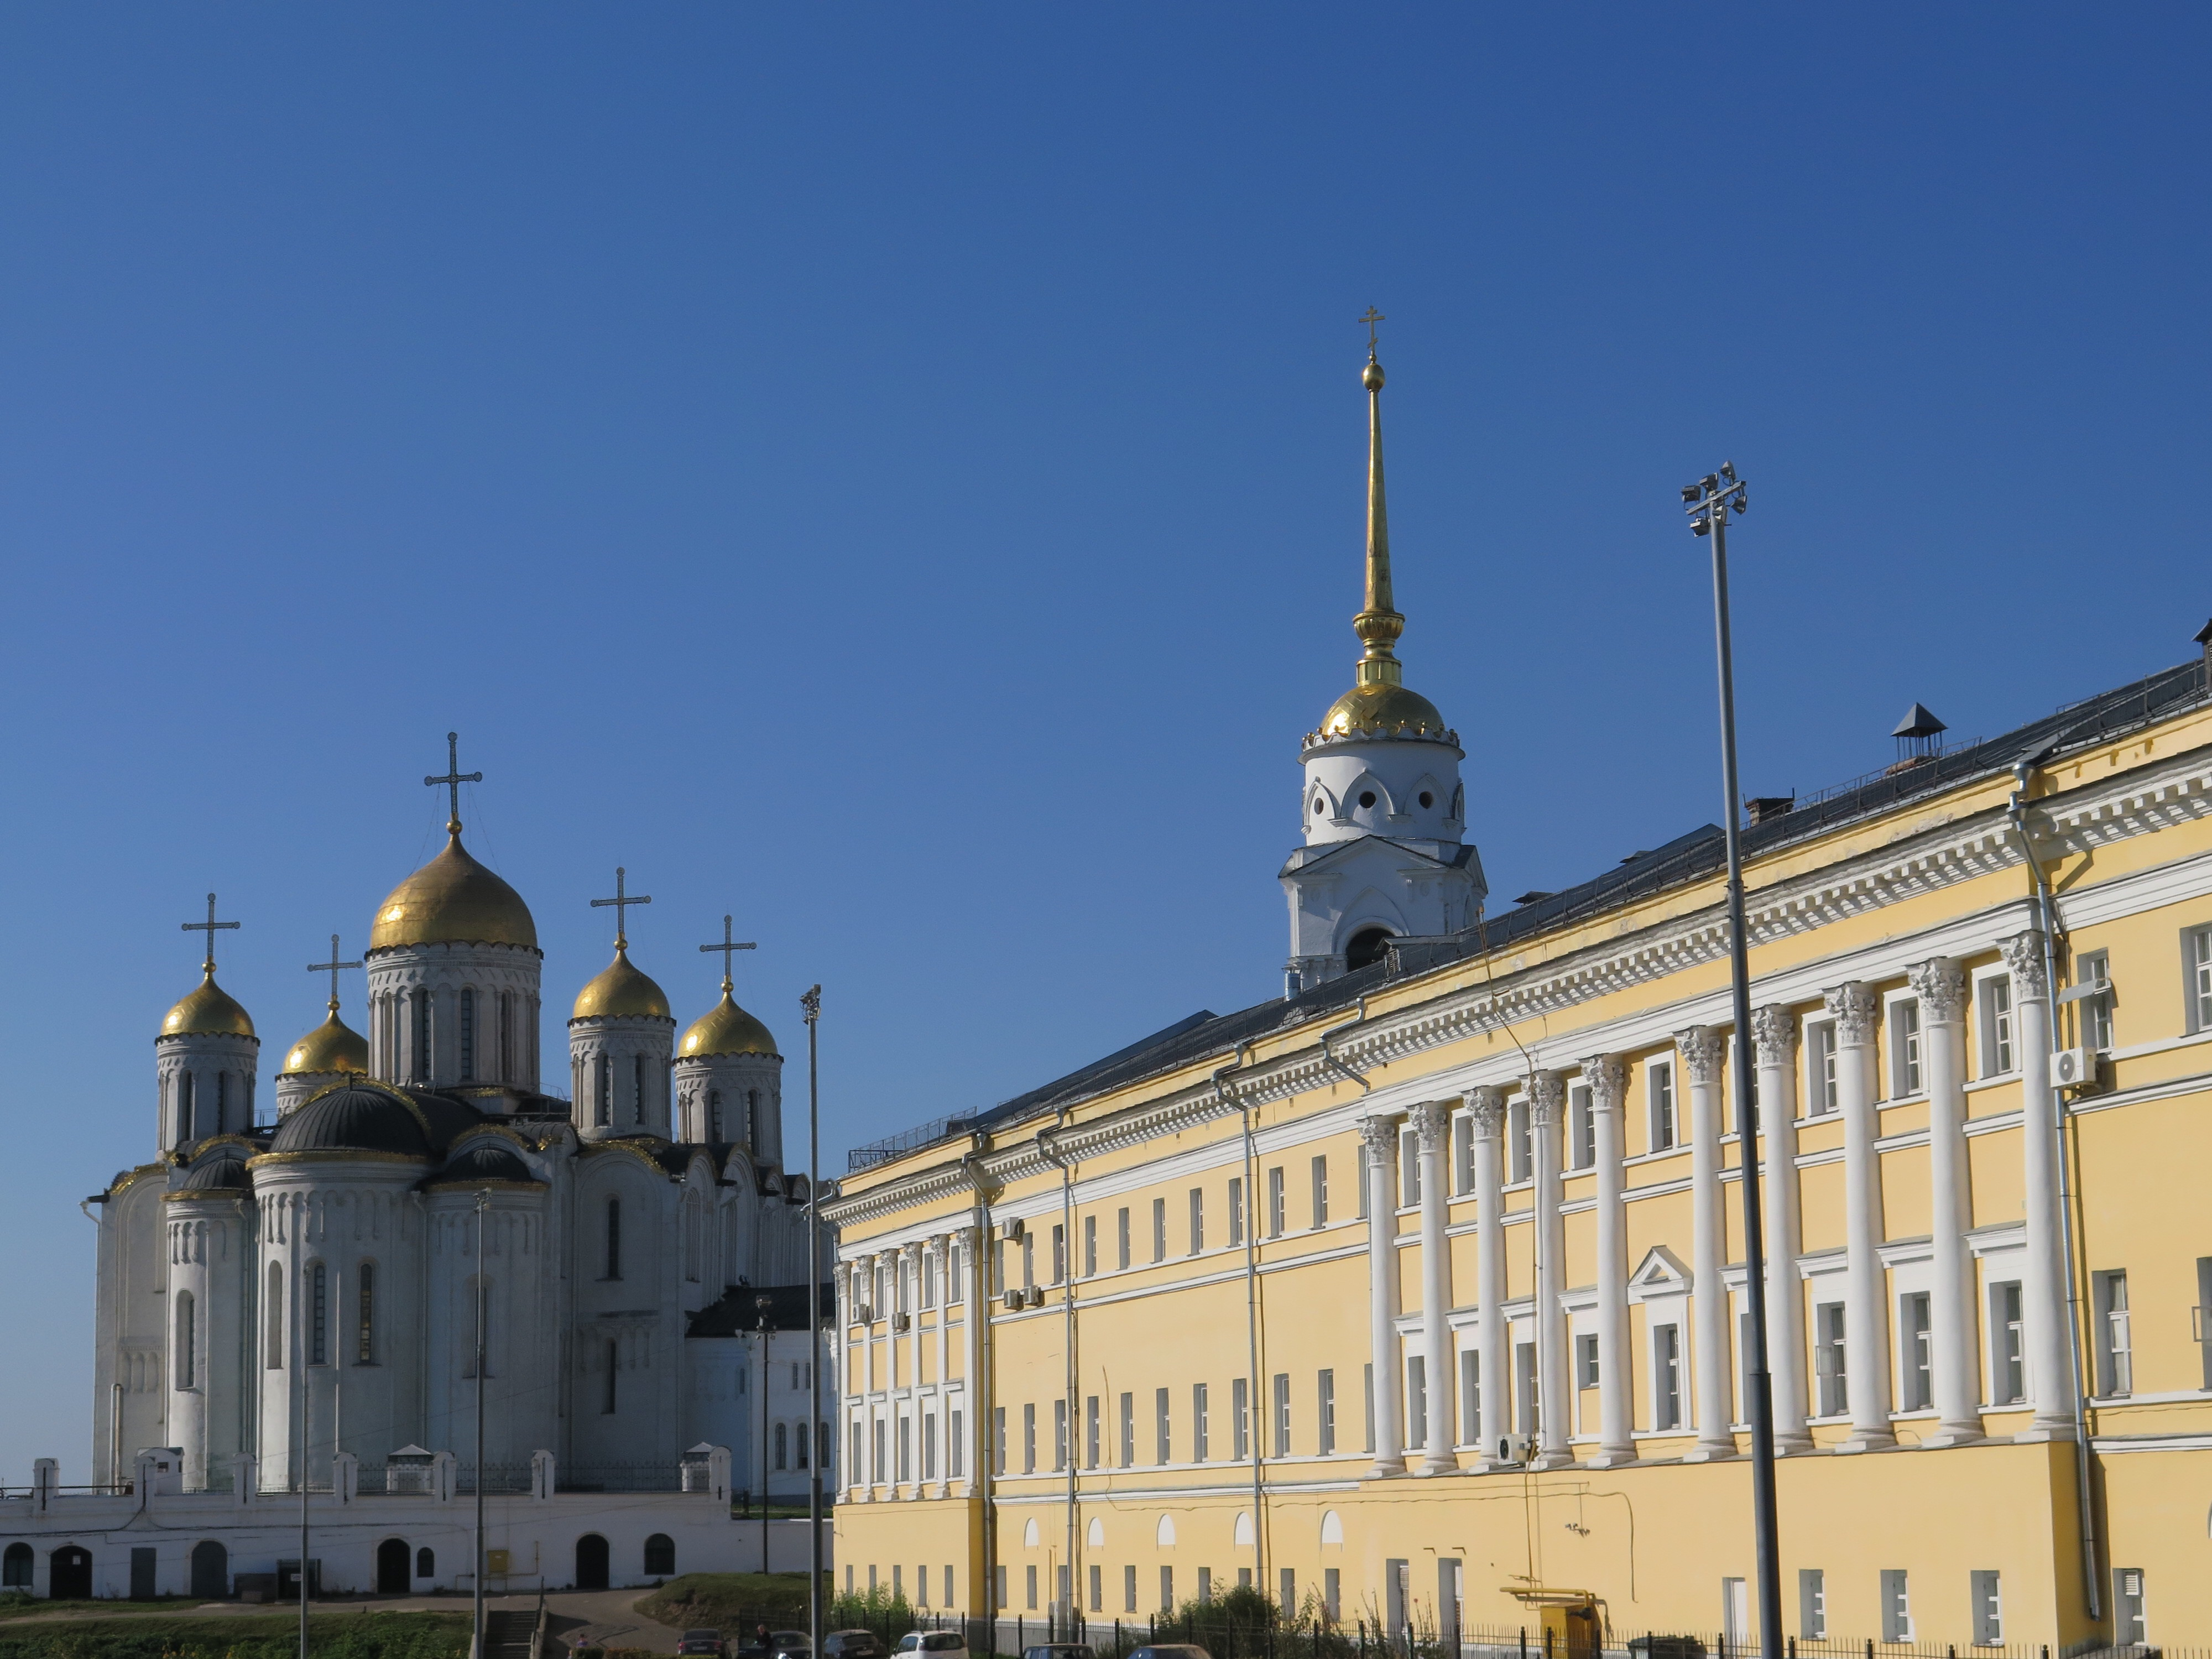 Assumption Cathedral is in the background. I am not sure what the yellow building houses.